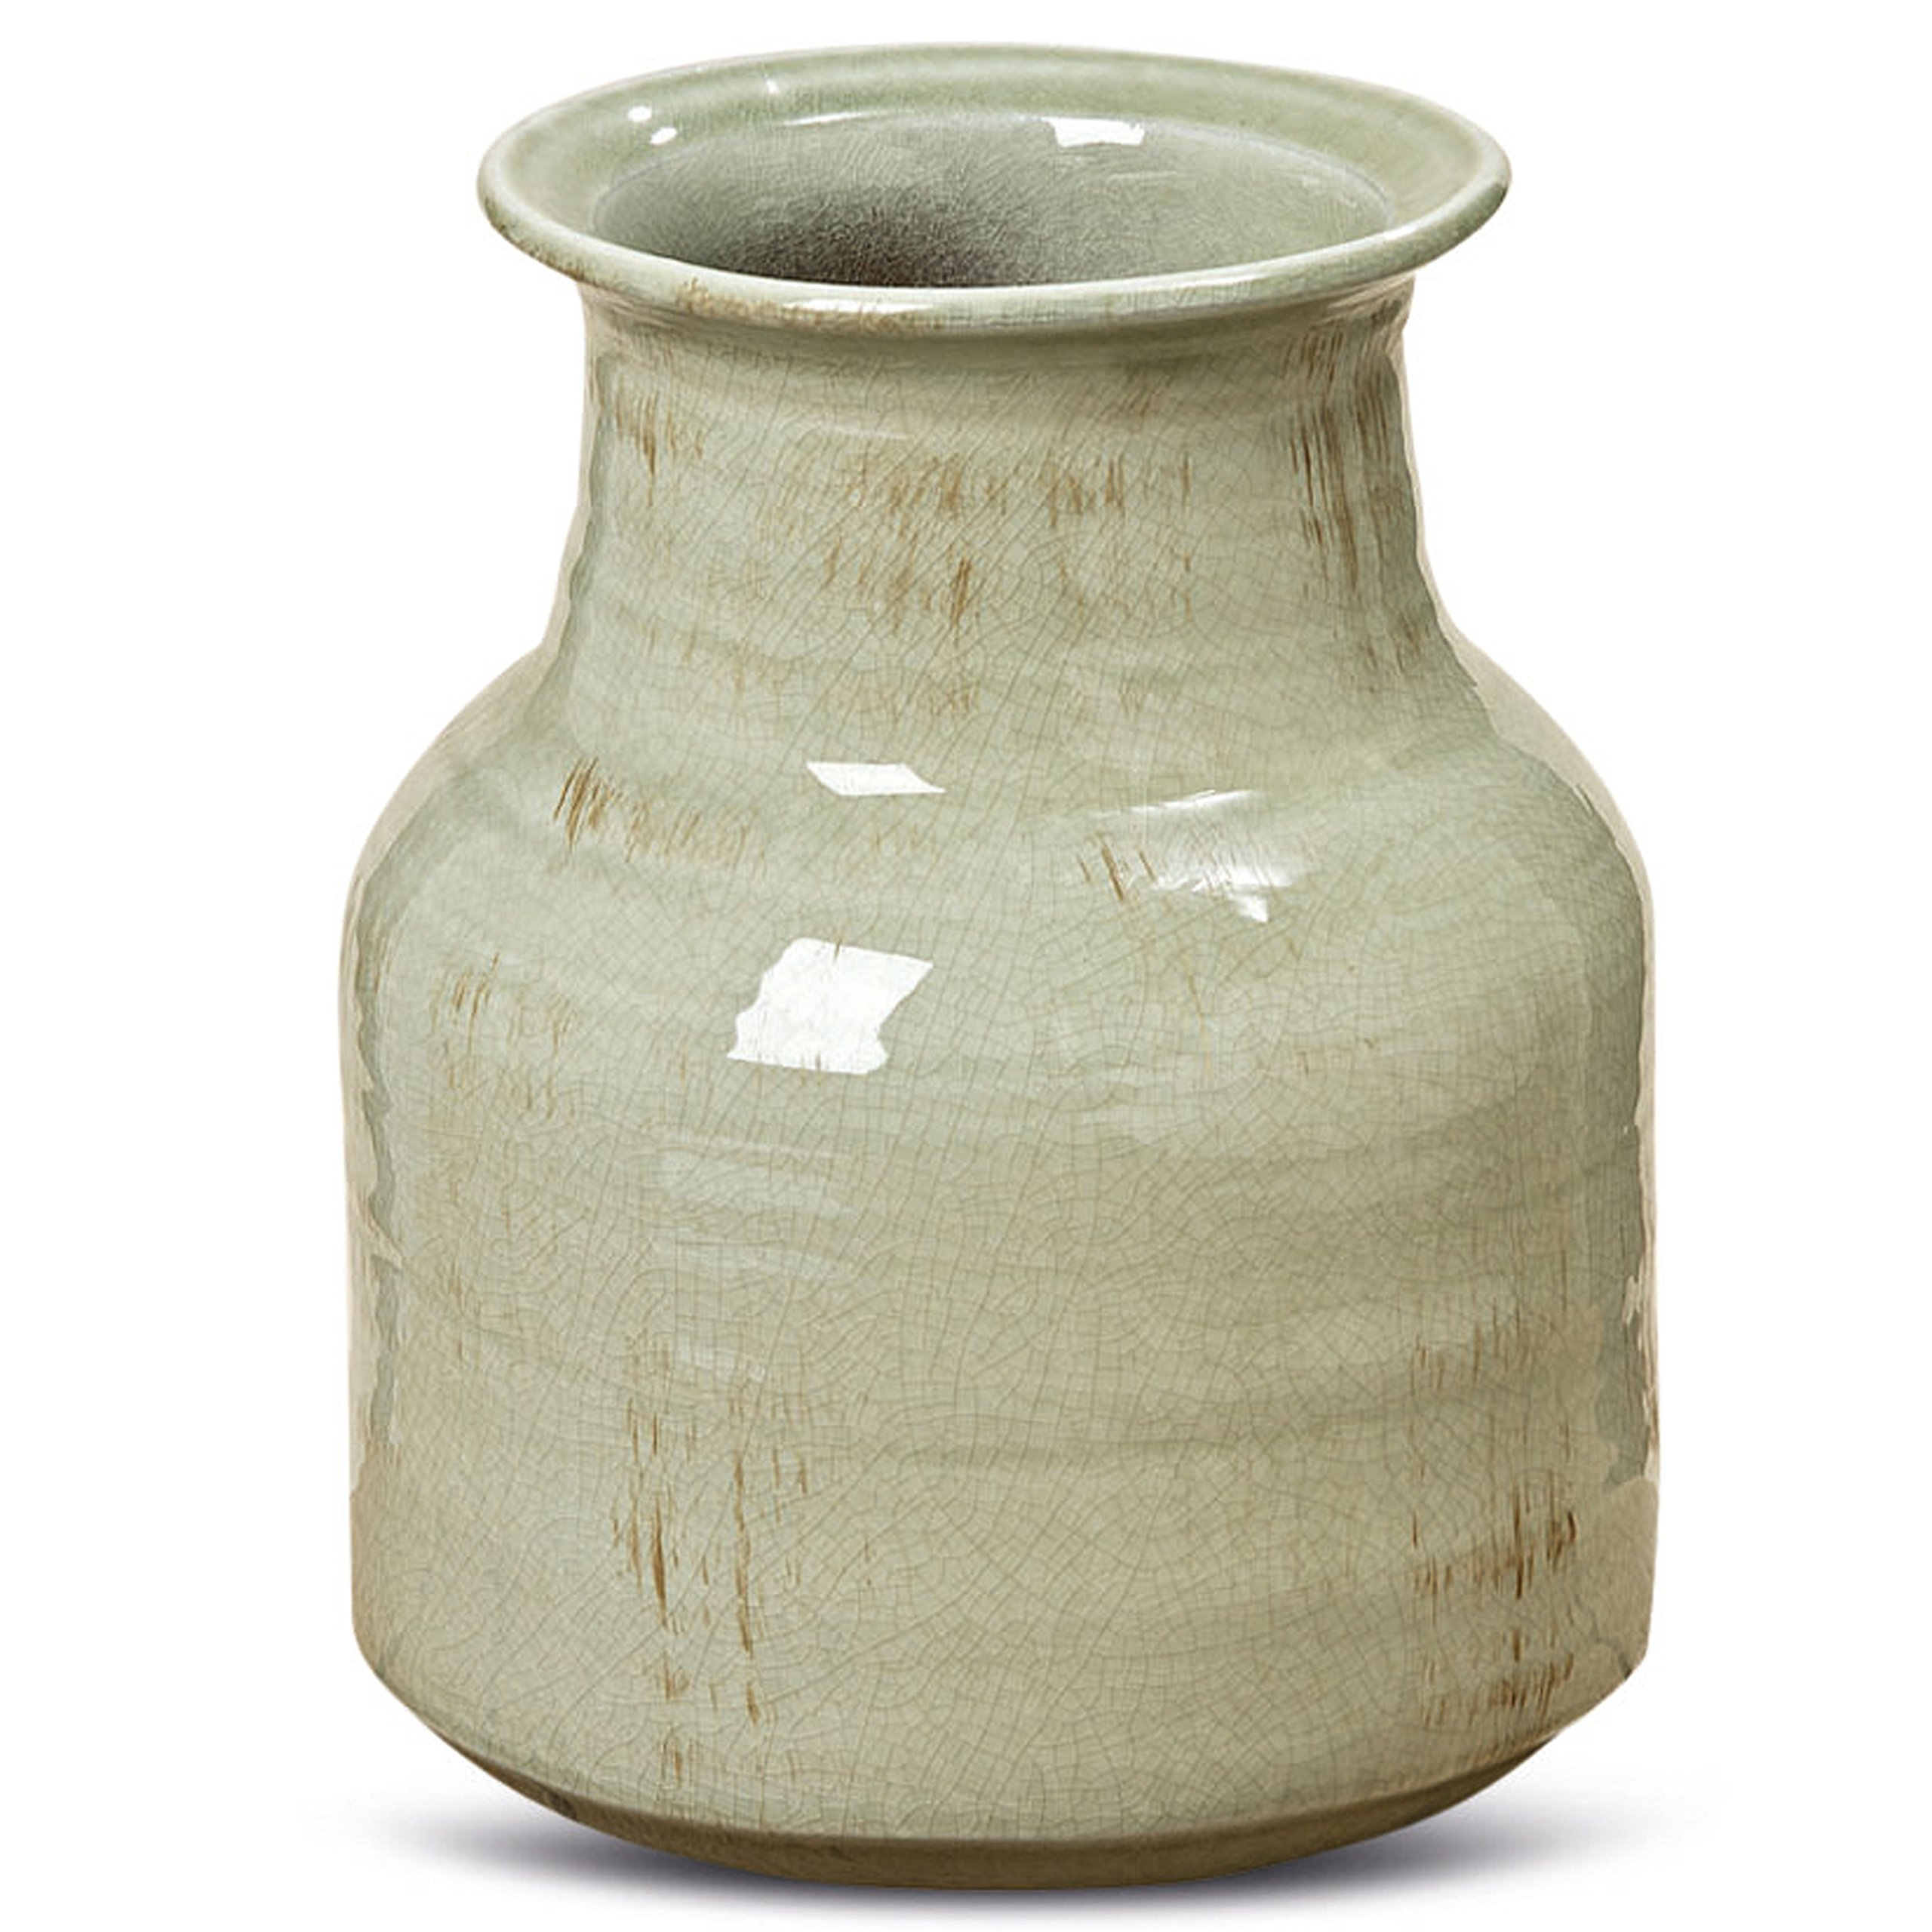 Whole House Worlds The Beach Chic Artisinal Vase, Celadon Glazed, Distressed Green, Crackled with Terracotta Undertones, Stoneware, 8 1/4 Diameter, 10 1/4 Tall Inches, By